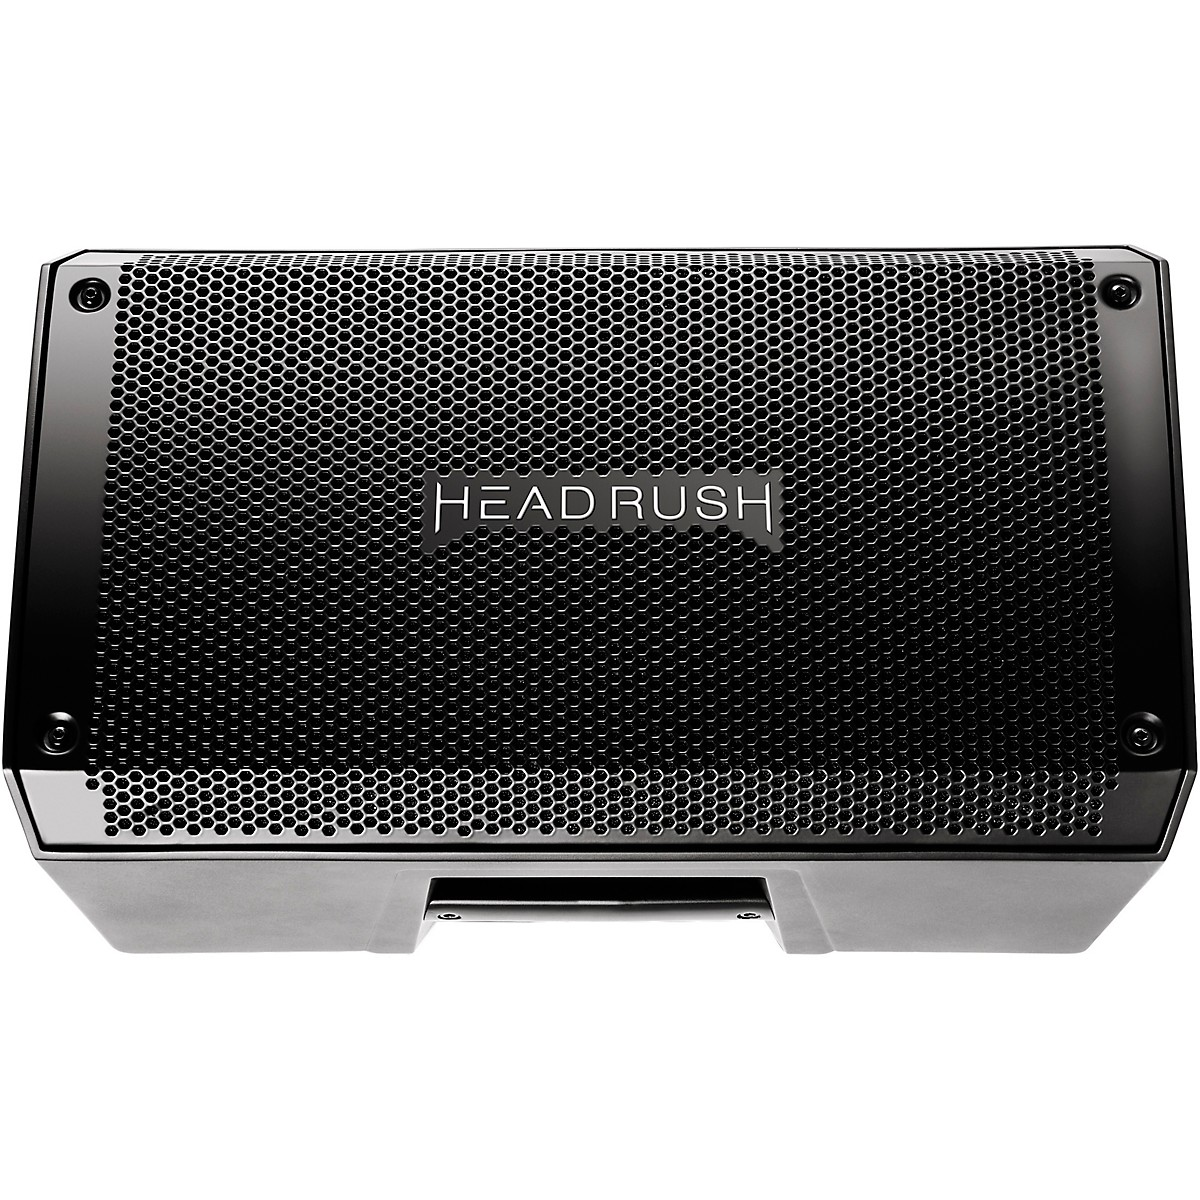 HeadRush FRFR-108 2,000W 1x8 Powered Speaker Cabinet